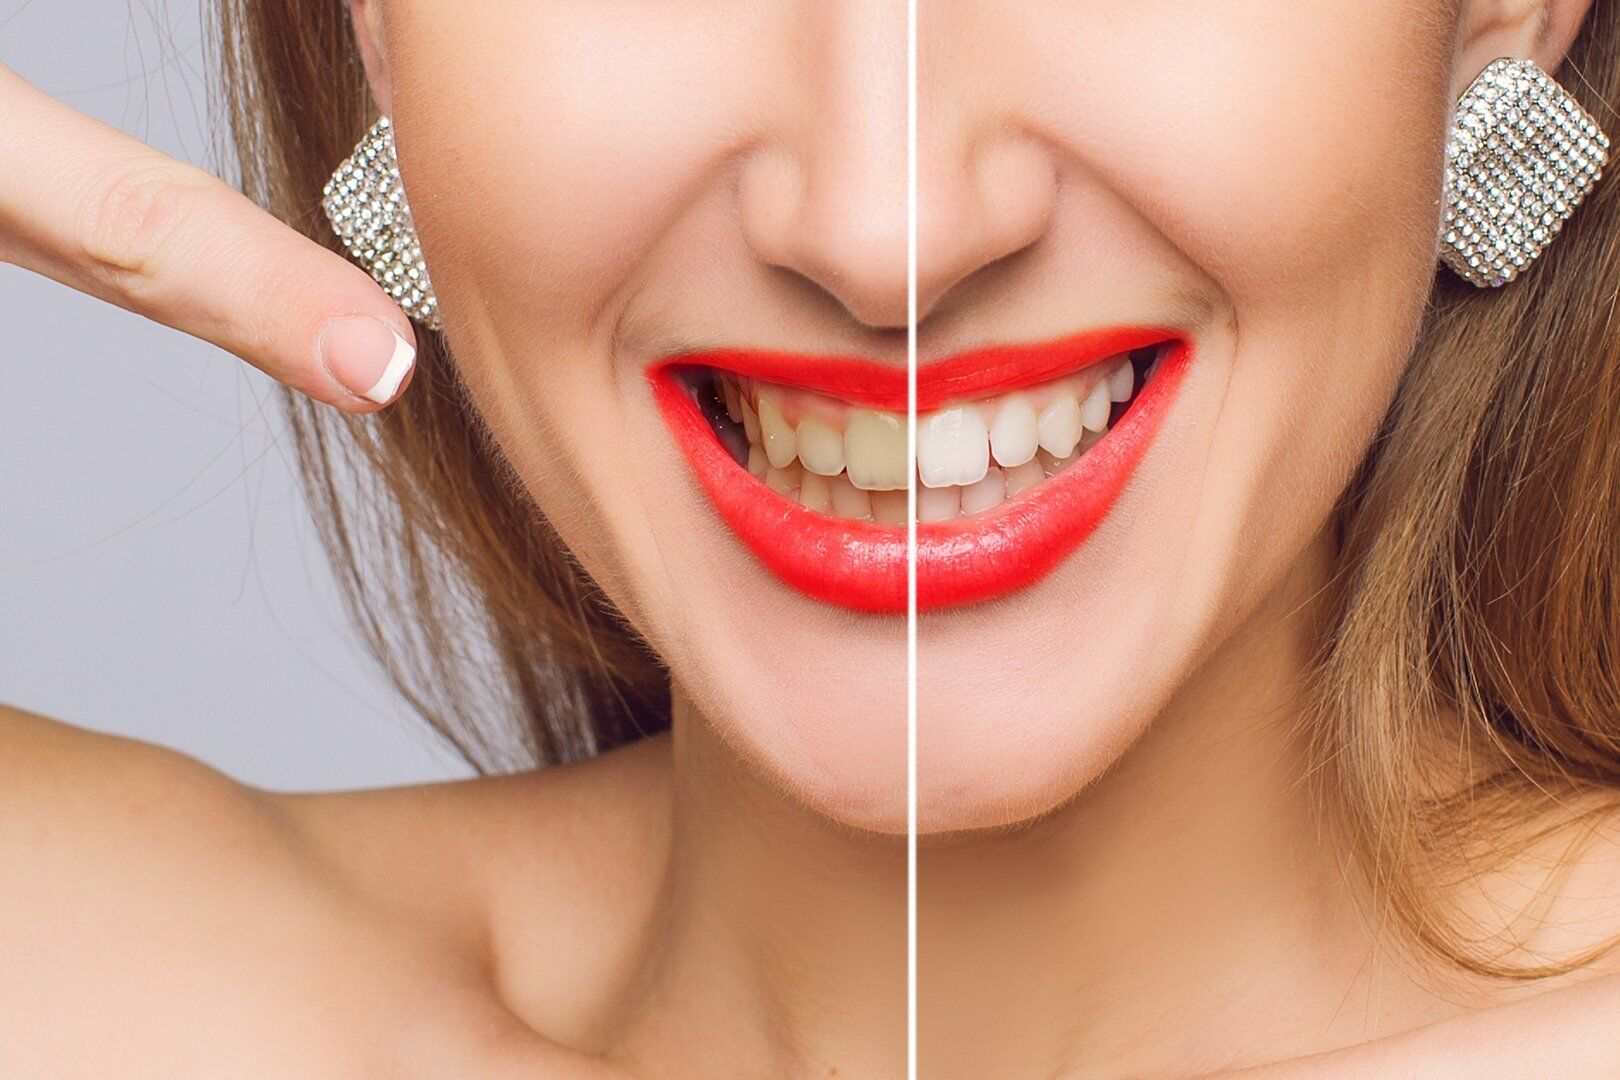 woman teeth before & after dental treatment